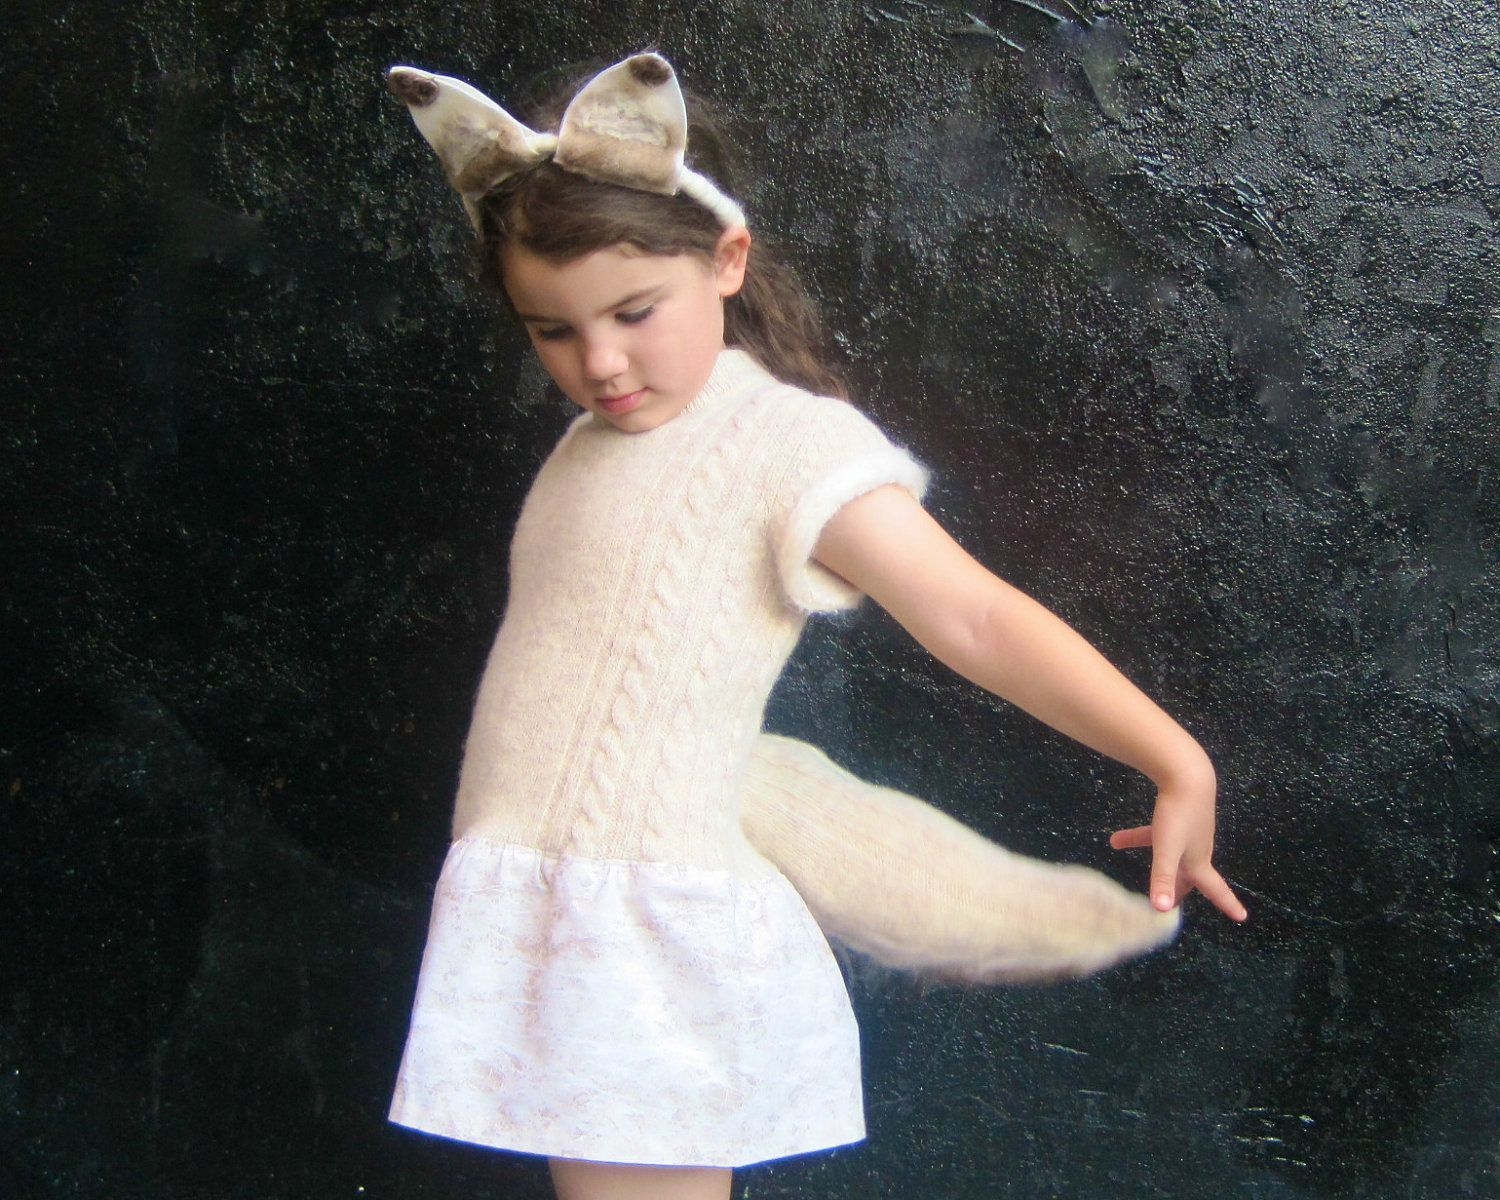 Arctic Fox Tail and Headband Costume - Halloween Girls White Fox Animal WOOL Hat and Tail Only - Eco Friendly Kids. $38.00, via Etsy.